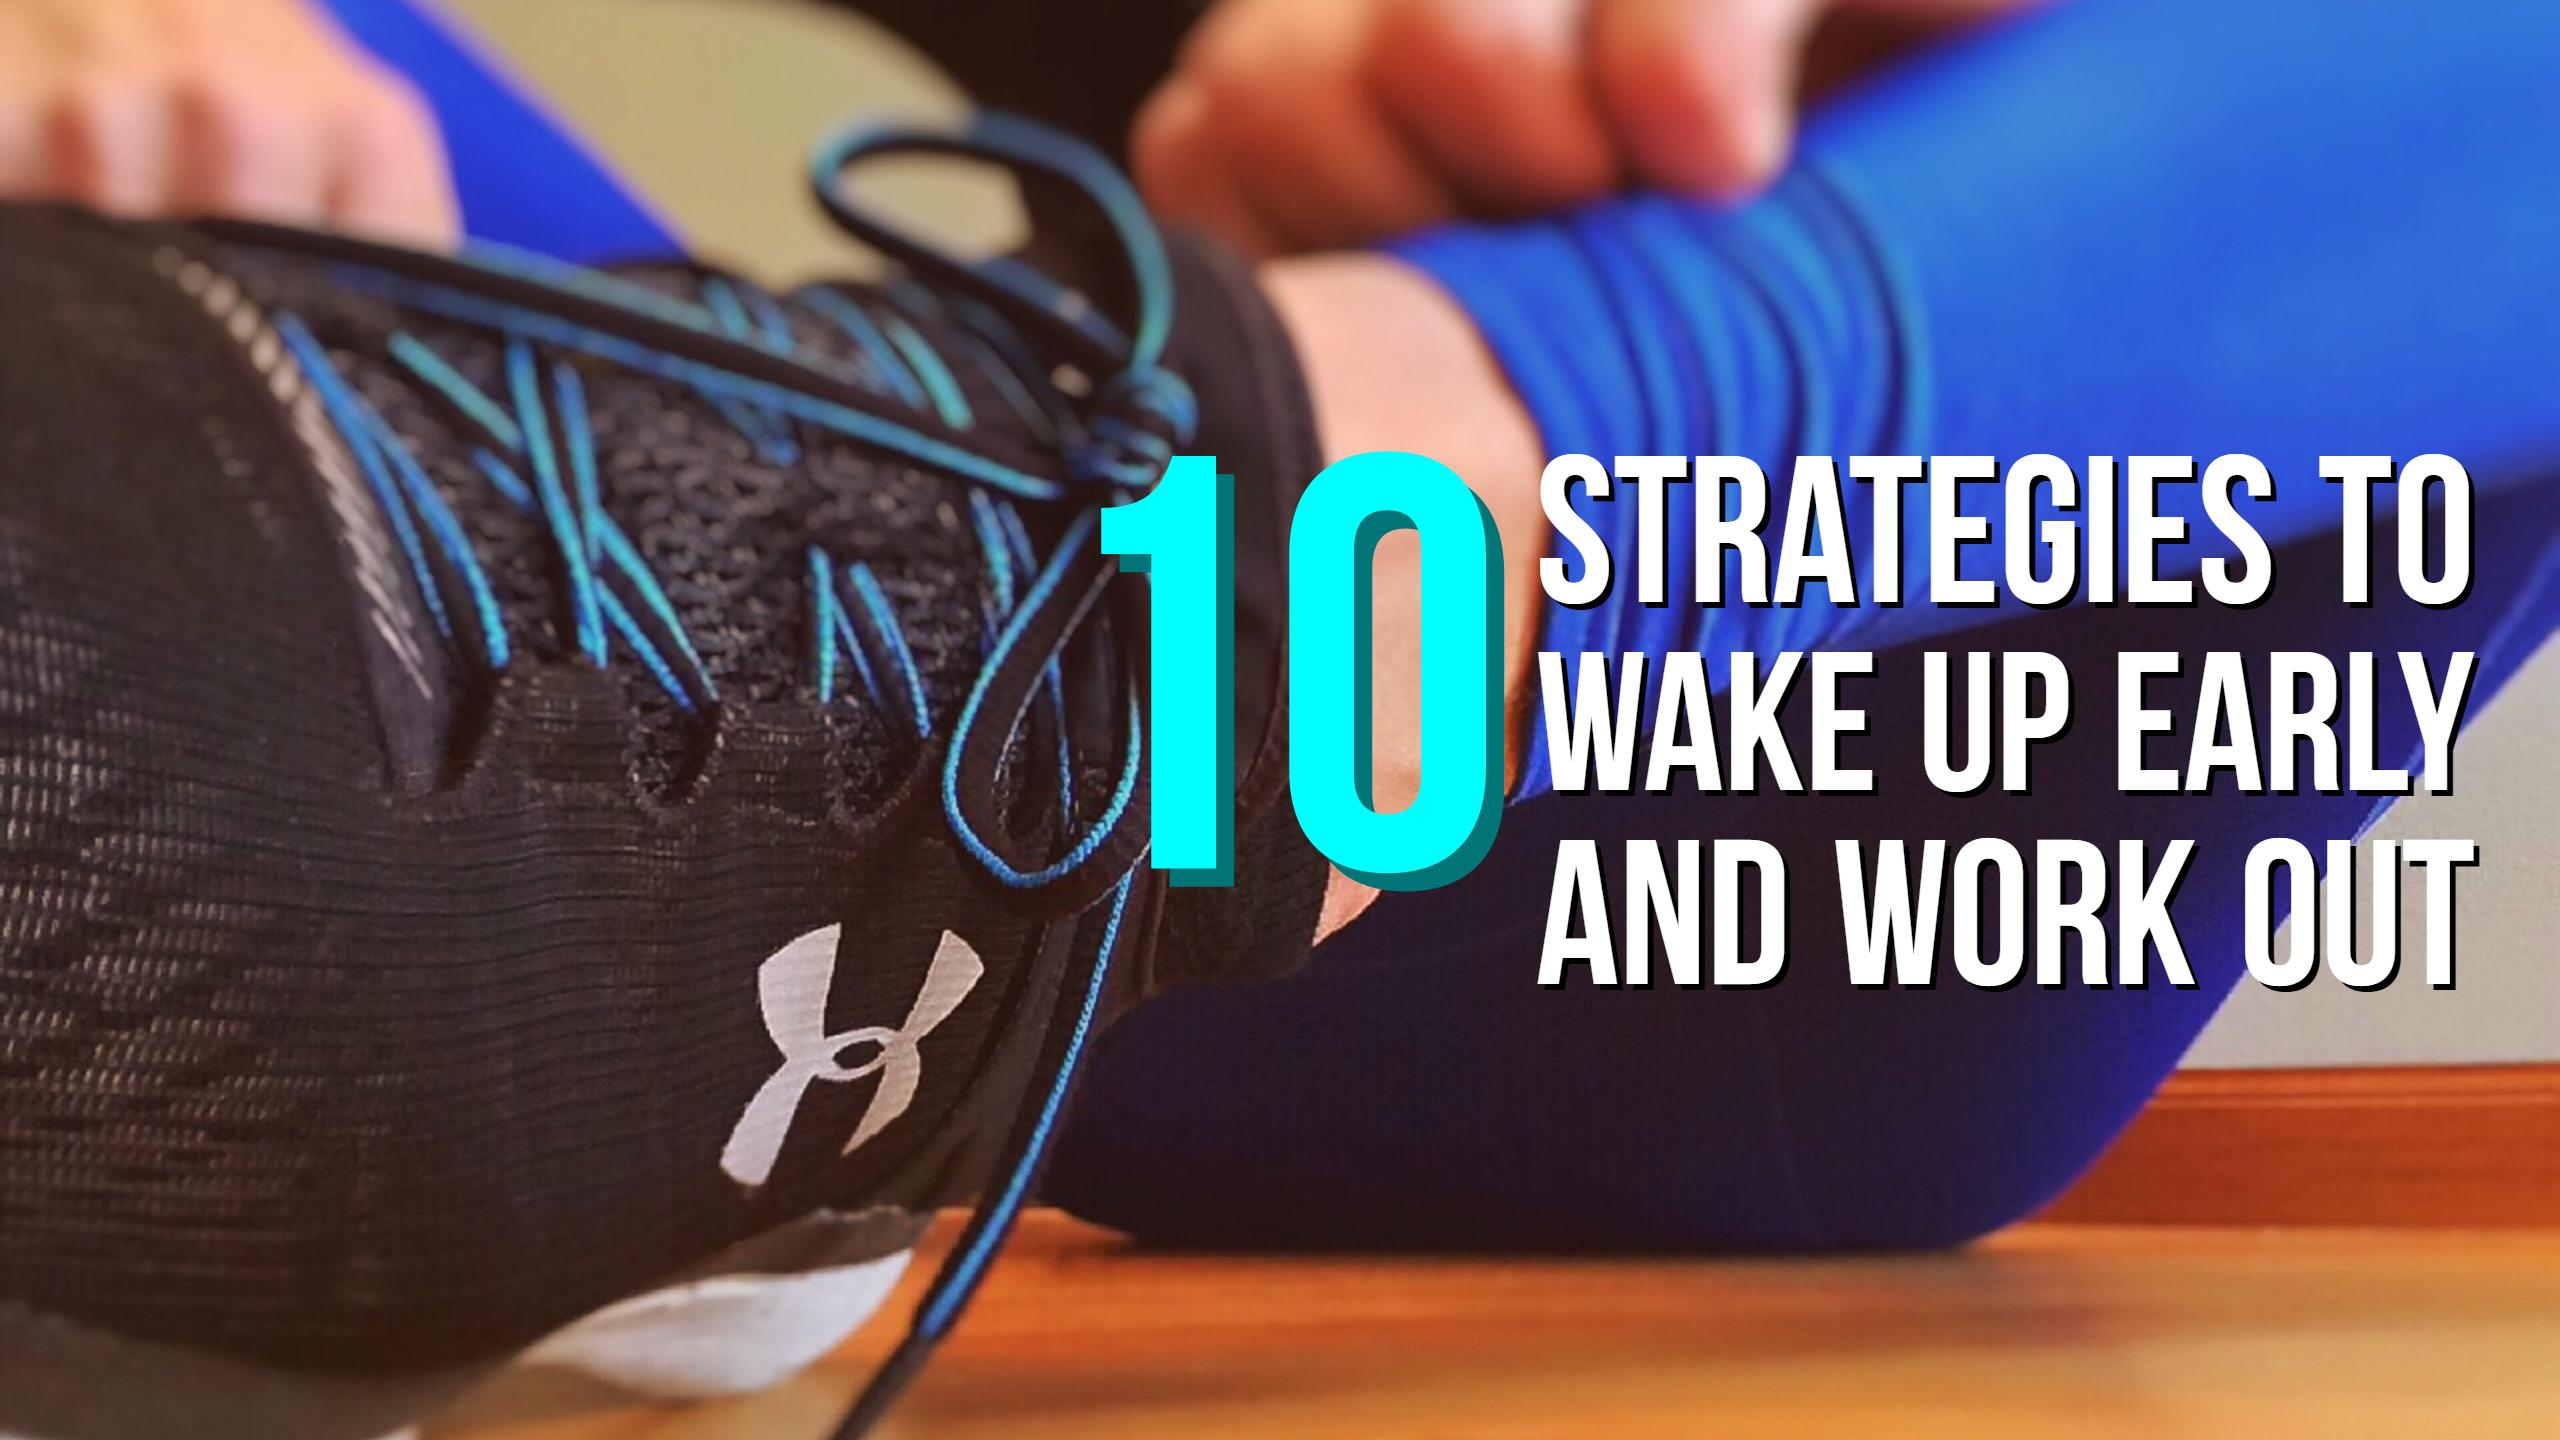 10 Strategies to wake up early and work out